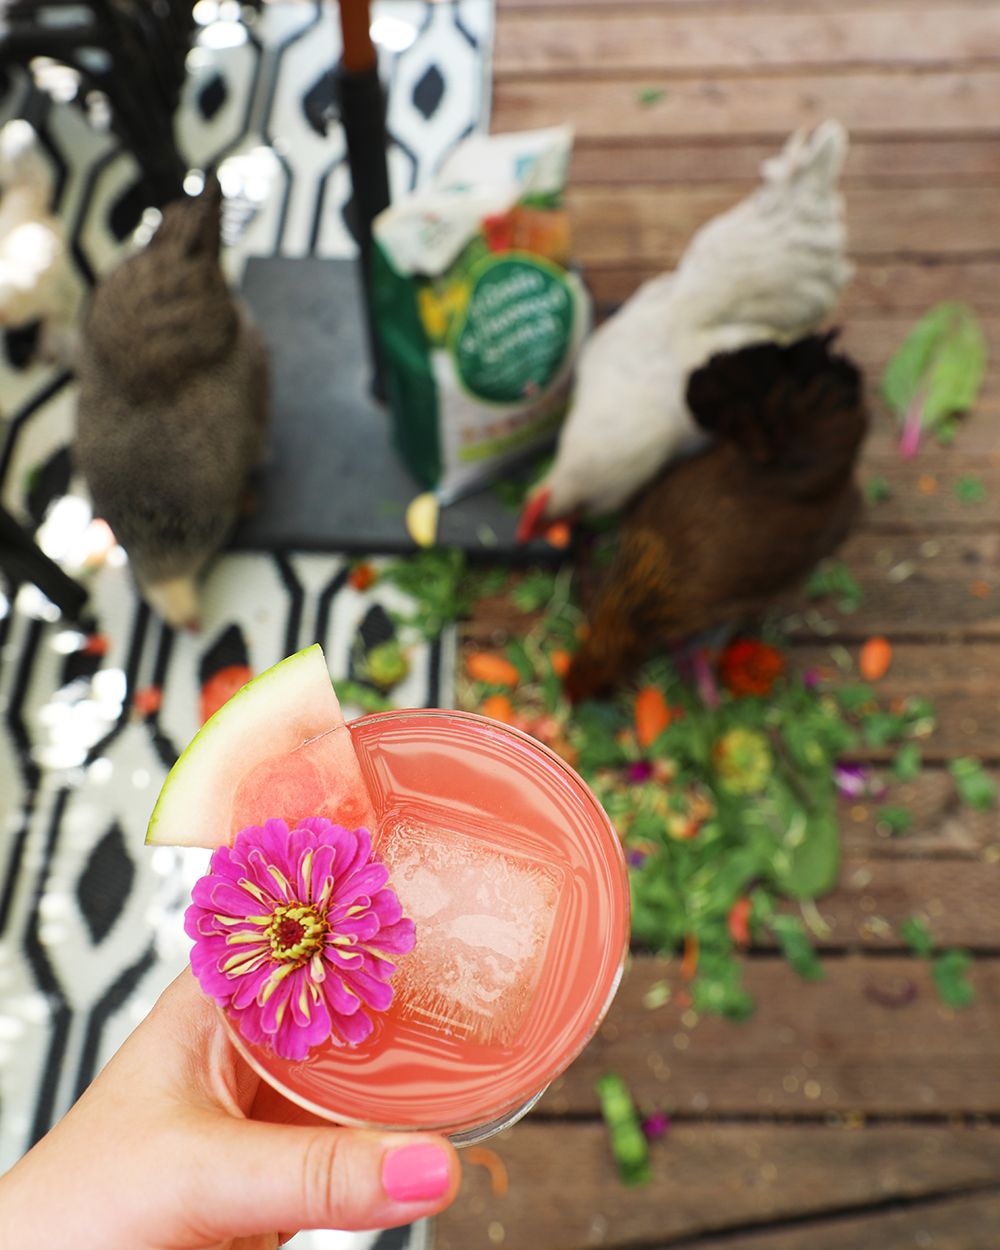 Happy hour in the Chicken Bar with Manna Pro Poultry treats | drinkingwithchickens.com